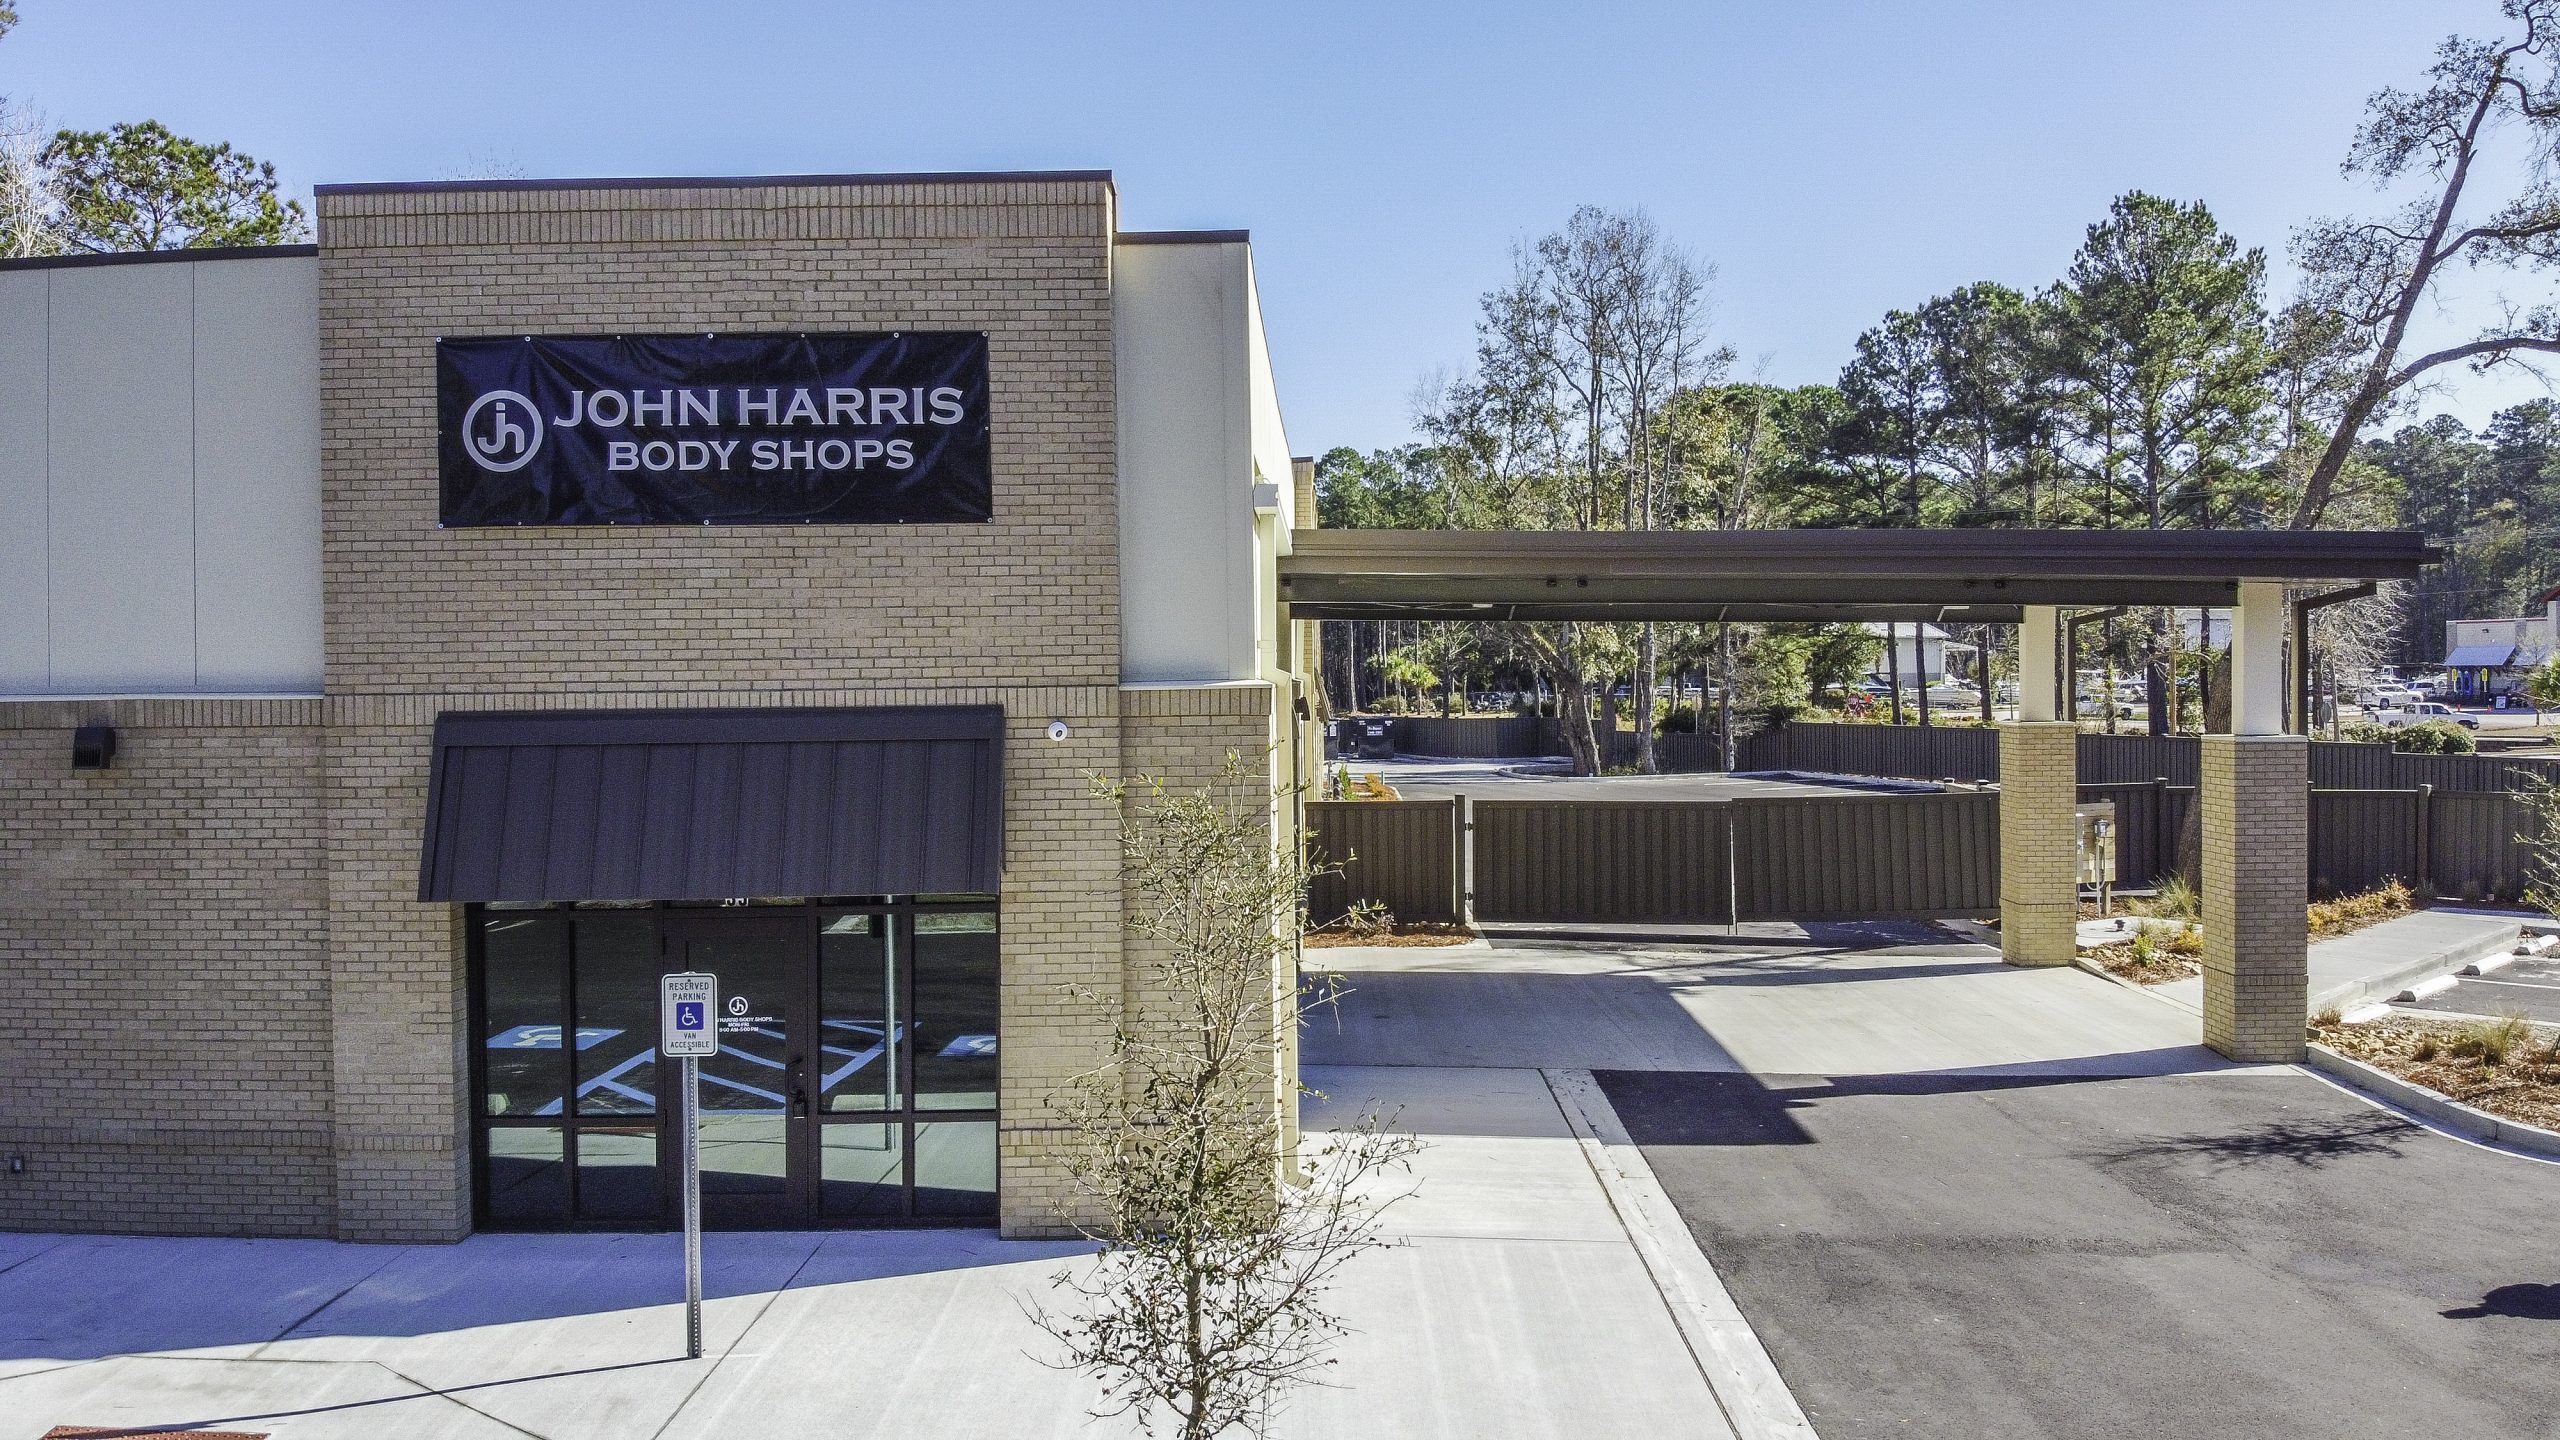 John Harris Body Shop